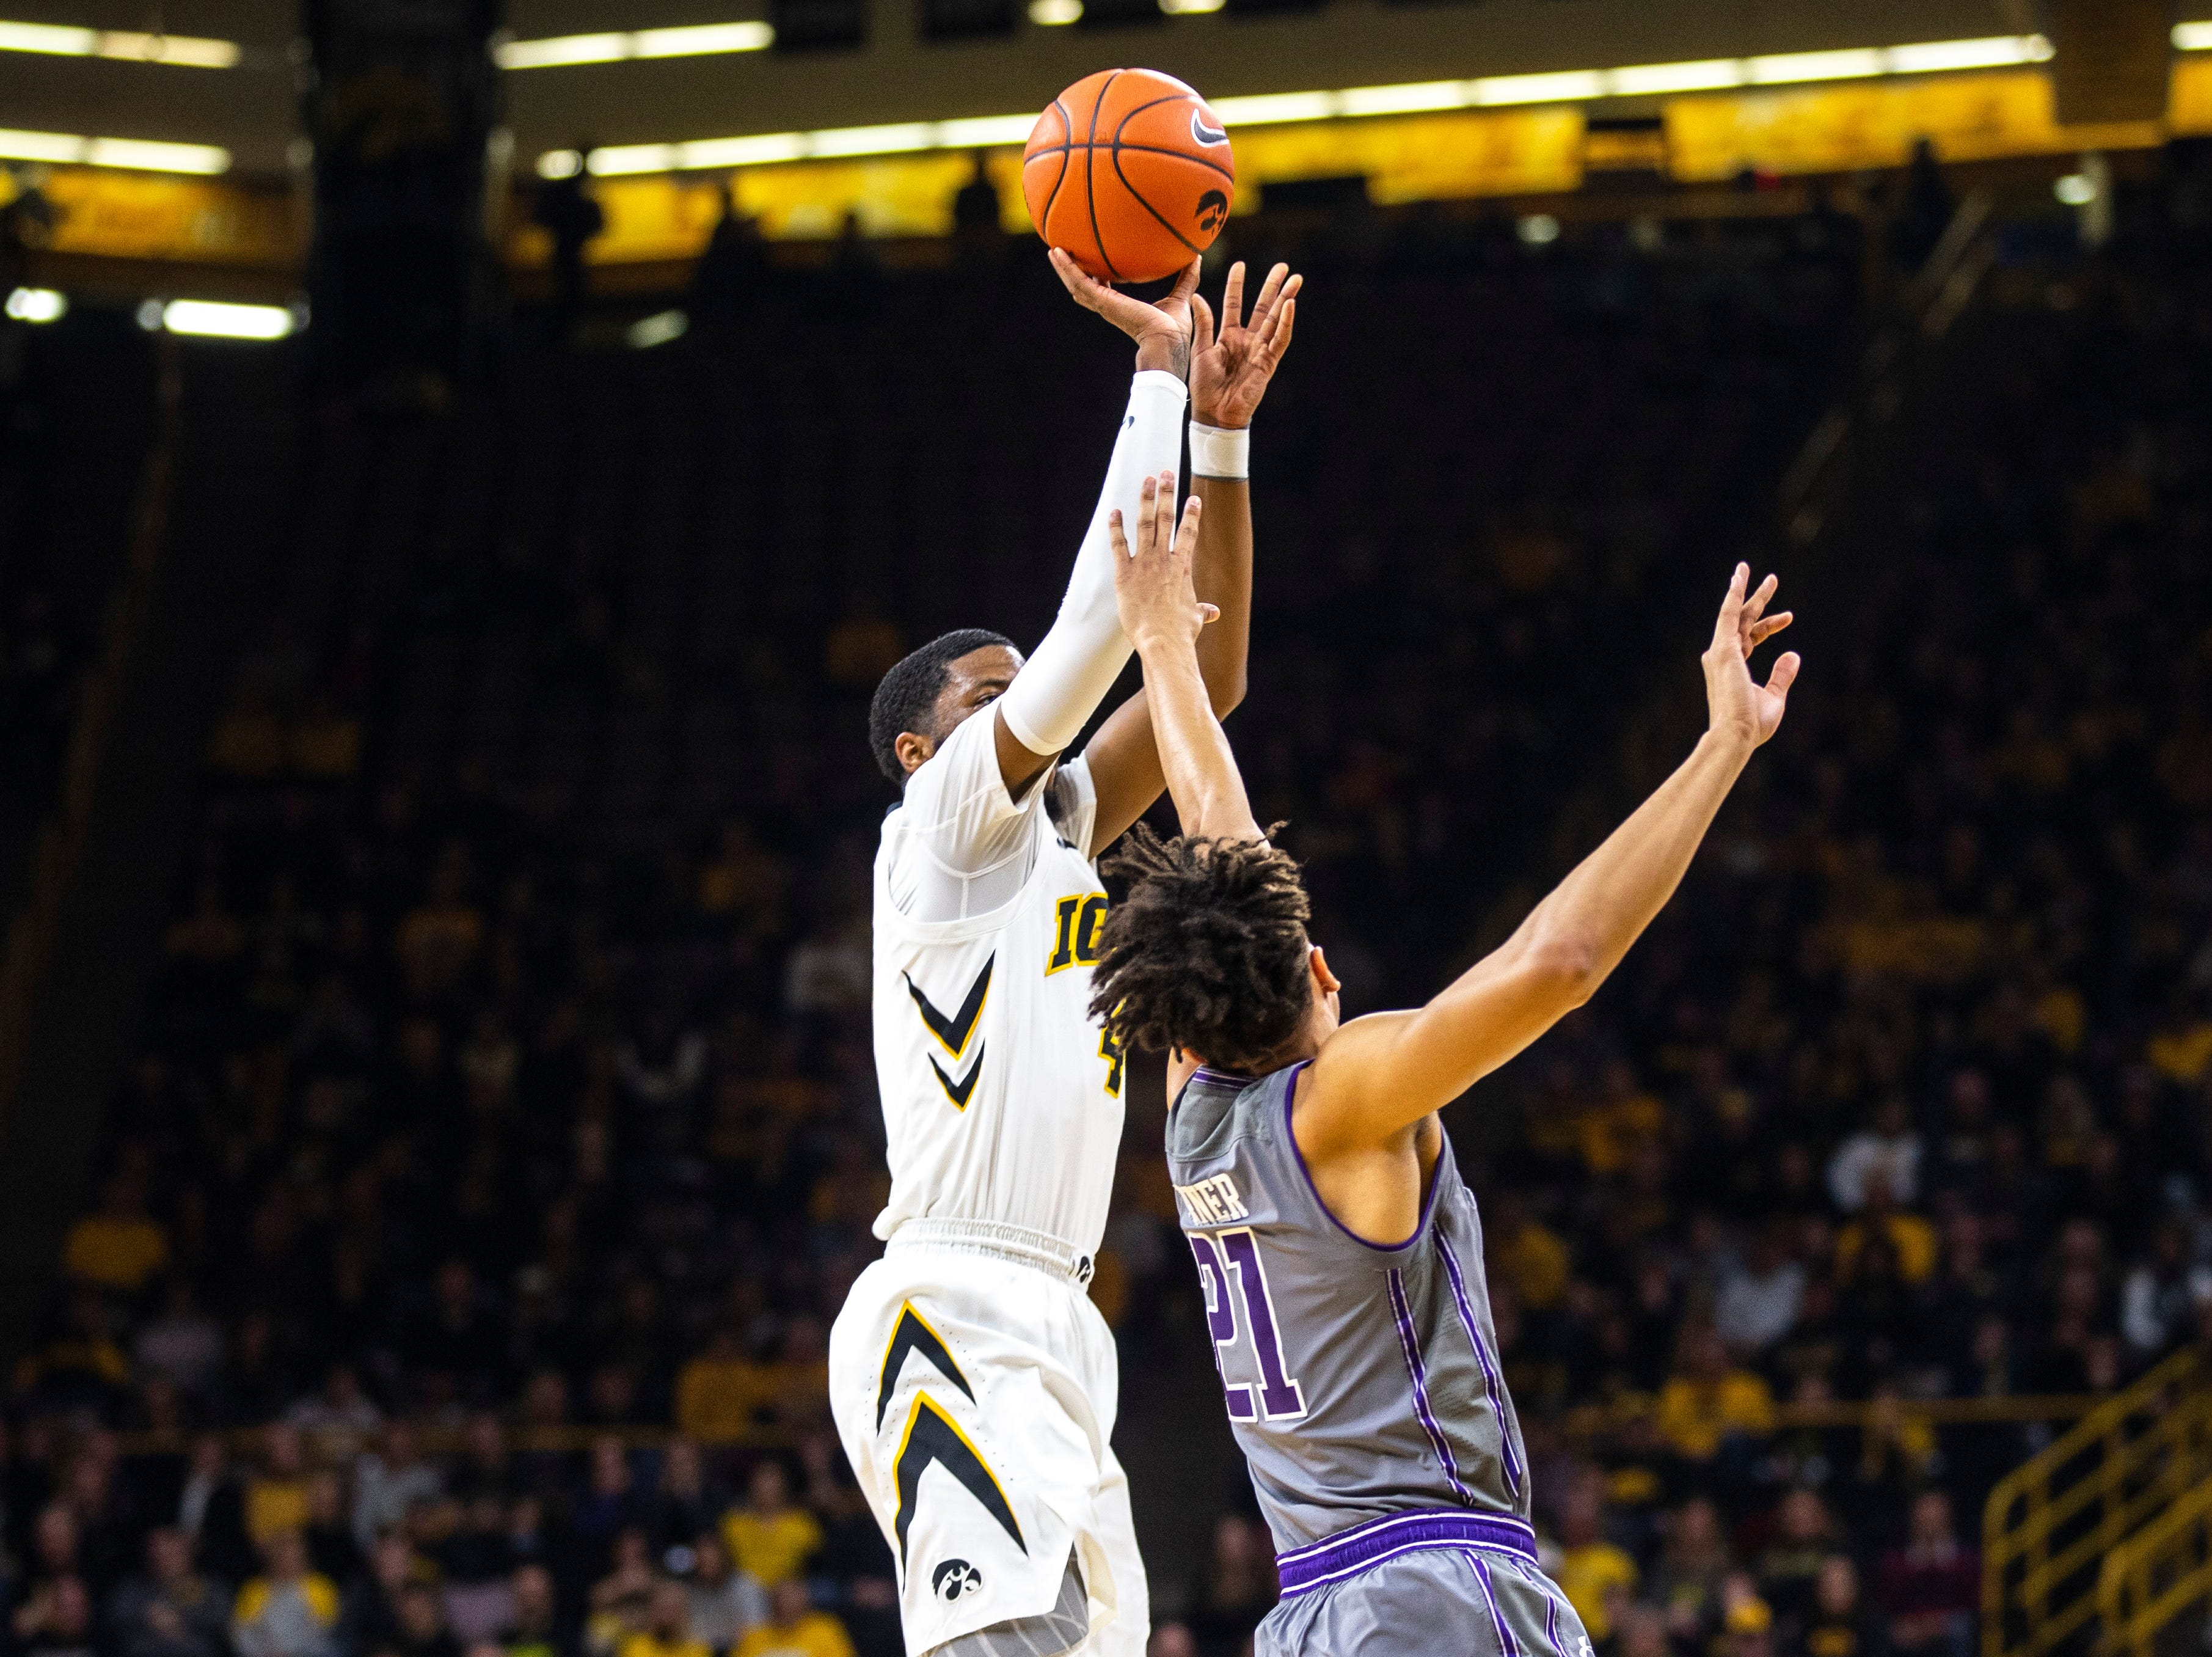 Iowa guard Isaiah Moss (4) attempts a 3-point basket while Northwestern forward A.J. Turner (21) defends during a NCAA Big Ten Conference men's basketball game on Sunday, Feb. 10, 2019 at Carver-Hawkeye Arena in Iowa City, Iowa.